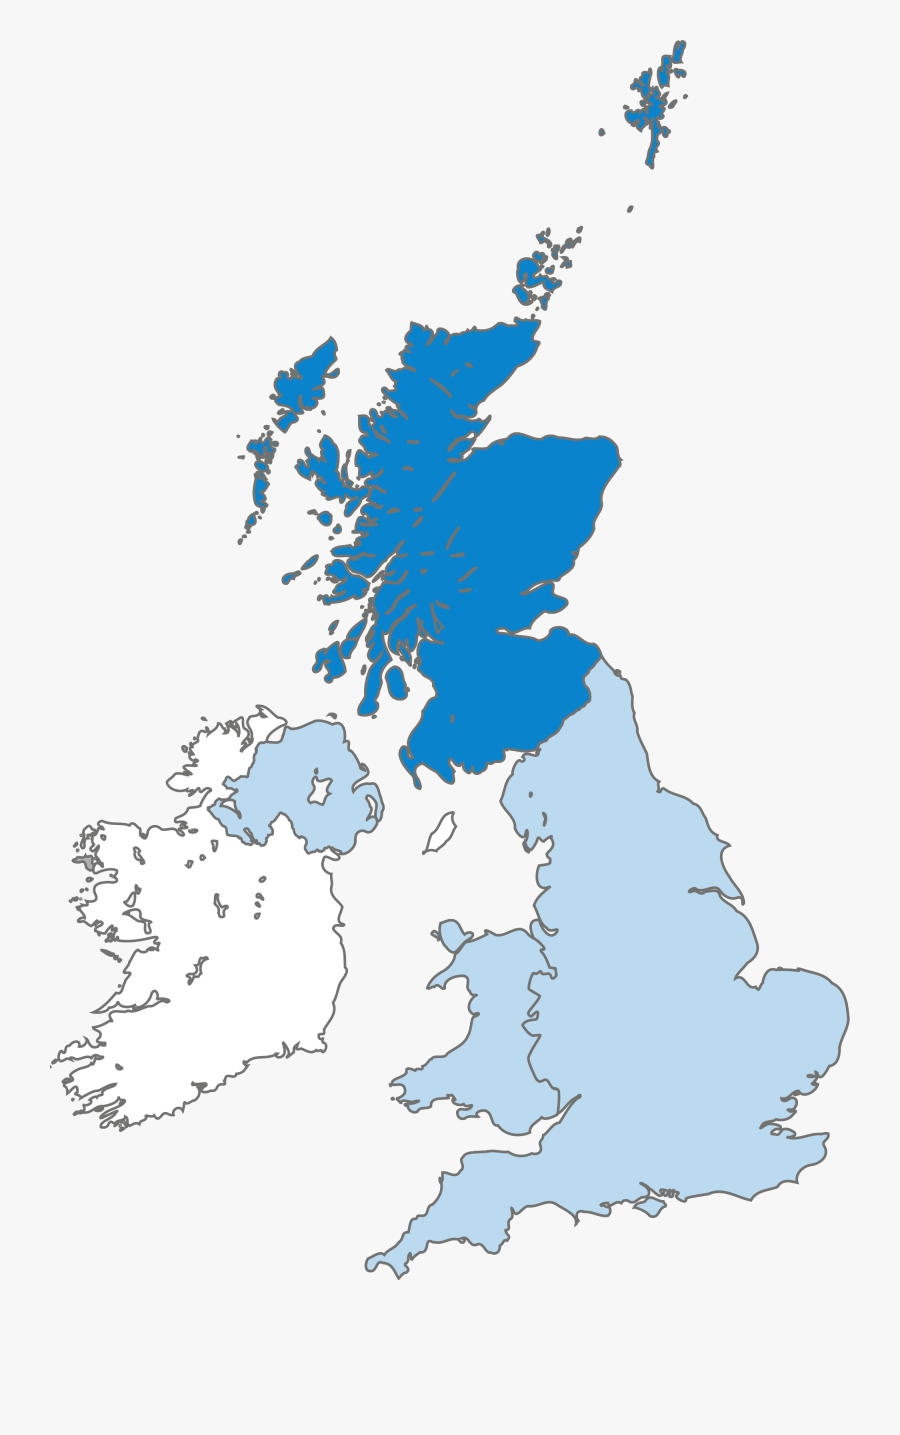 Uk Map - Map Of United Kingdom Vector, Transparent Clipart